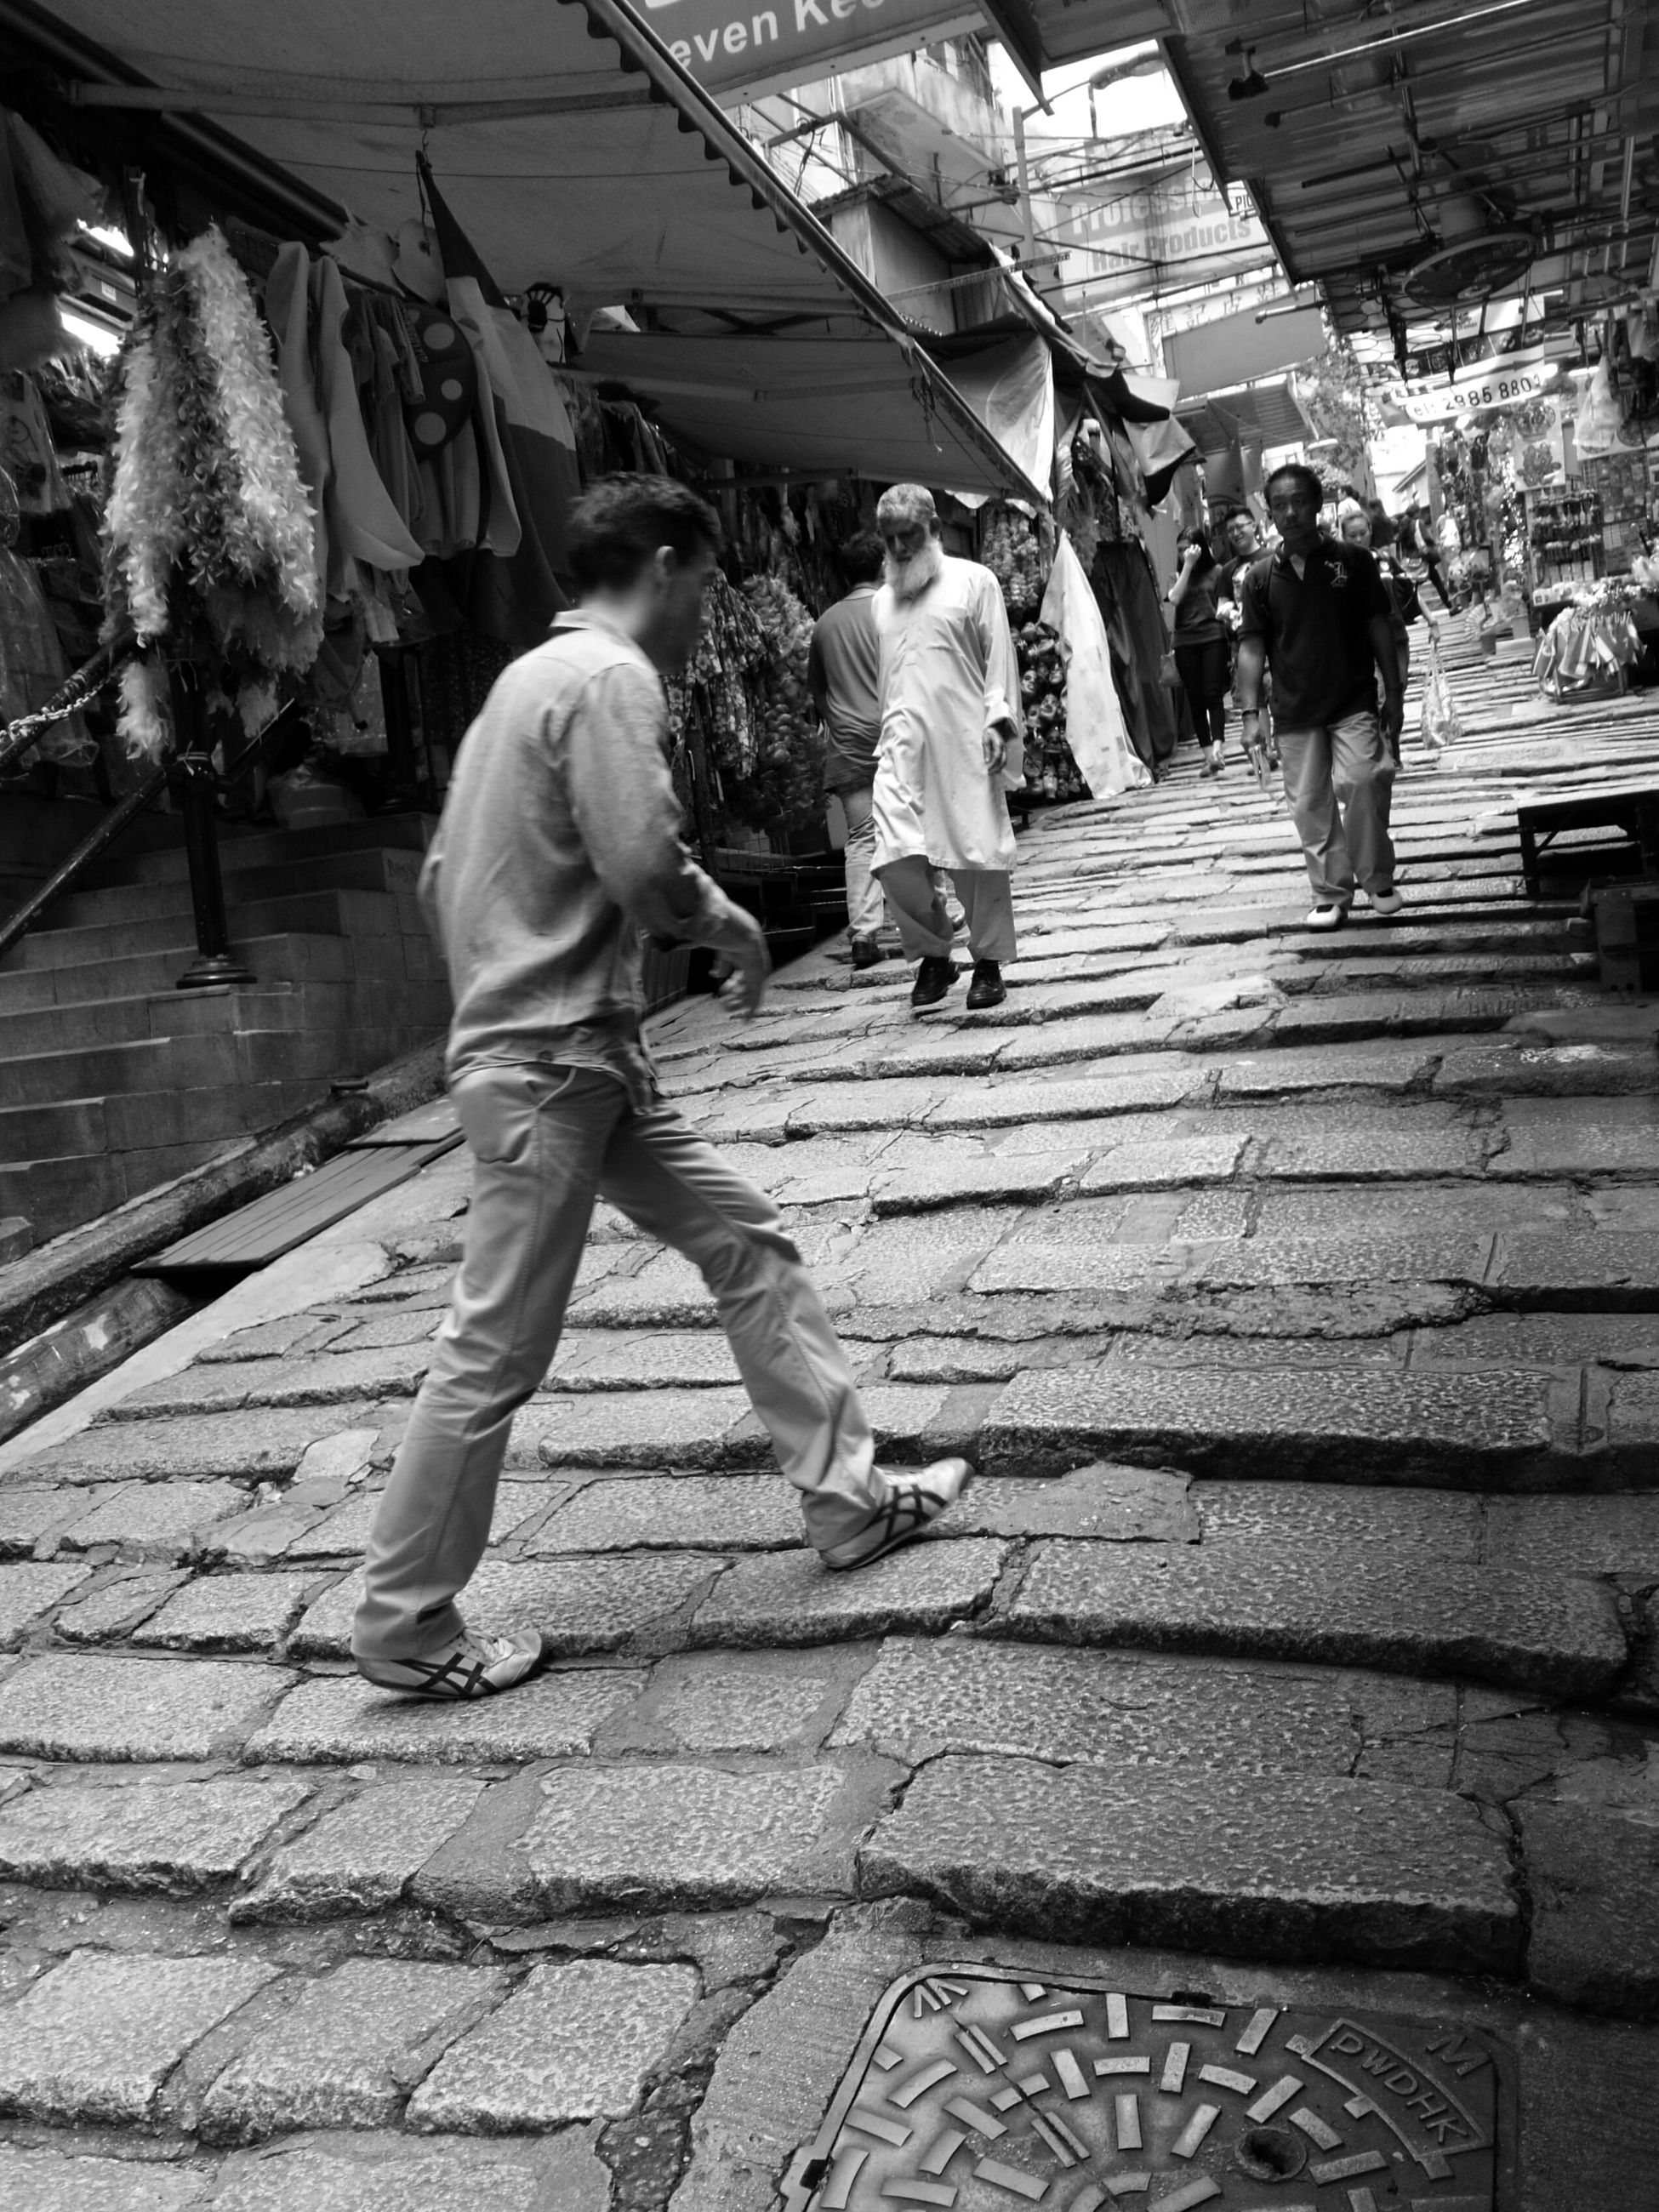 lifestyles, men, person, full length, leisure activity, walking, casual clothing, togetherness, large group of people, rear view, city life, street, medium group of people, steps, outdoors, boys, market, city